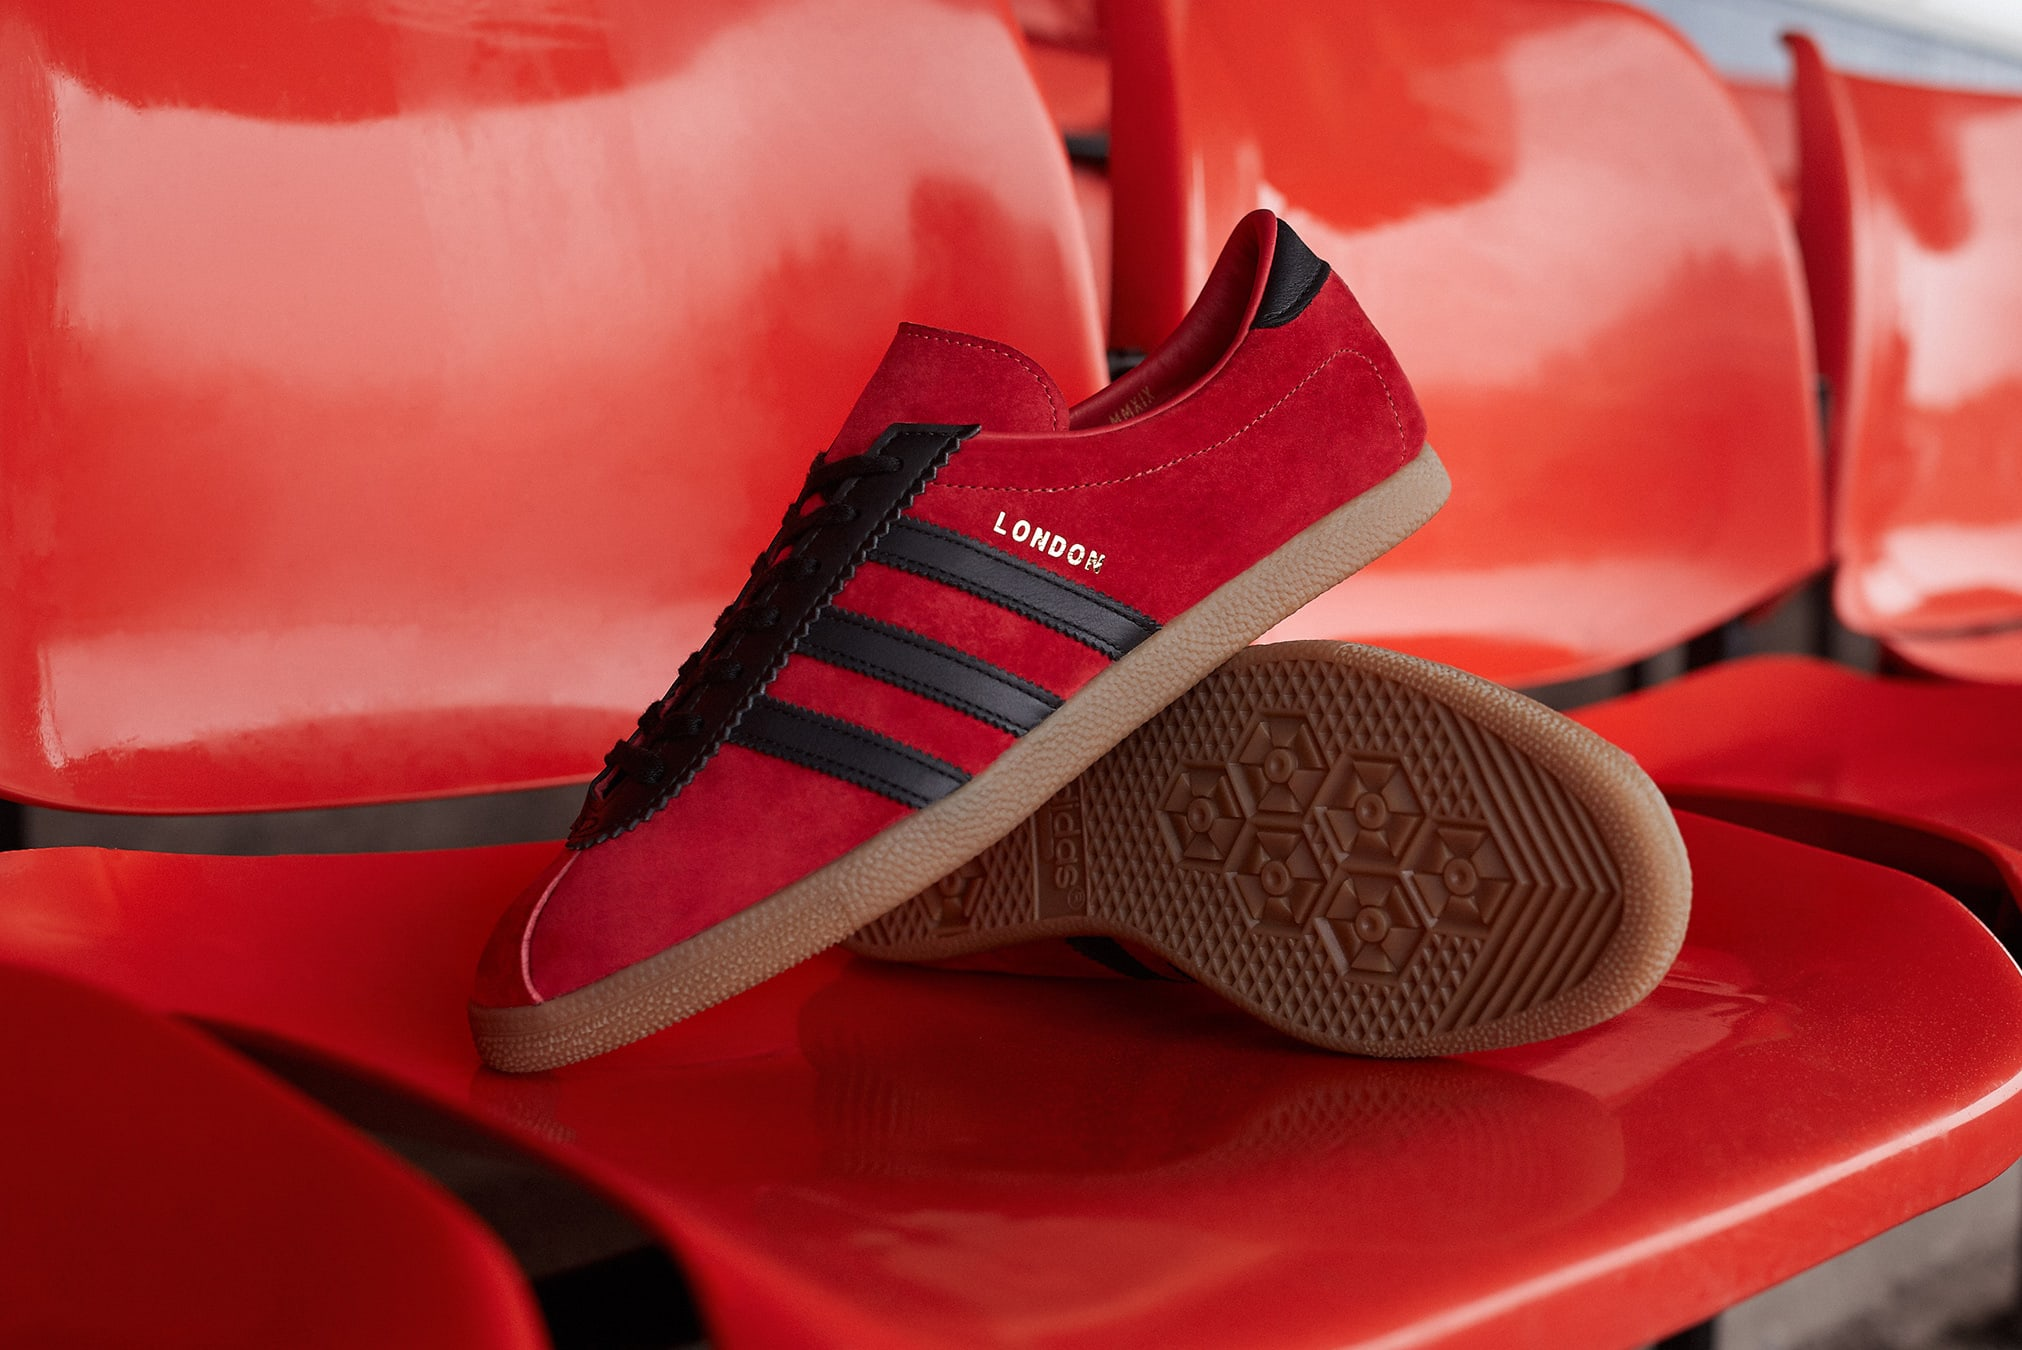 adidas London City Series - EE5723